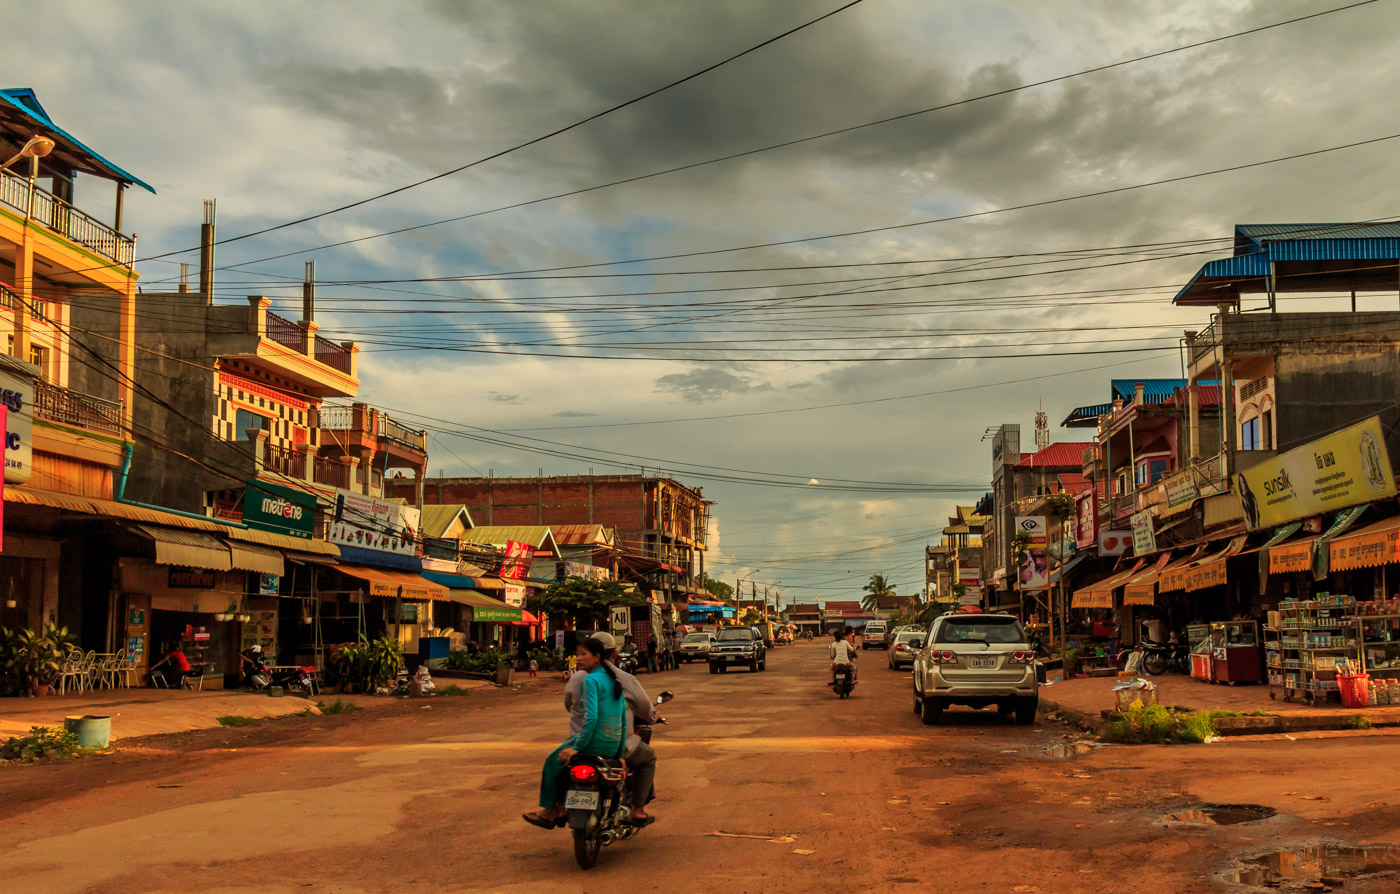 Maybe they aren't beautiful, but I think Cambodian cities are very interesting.